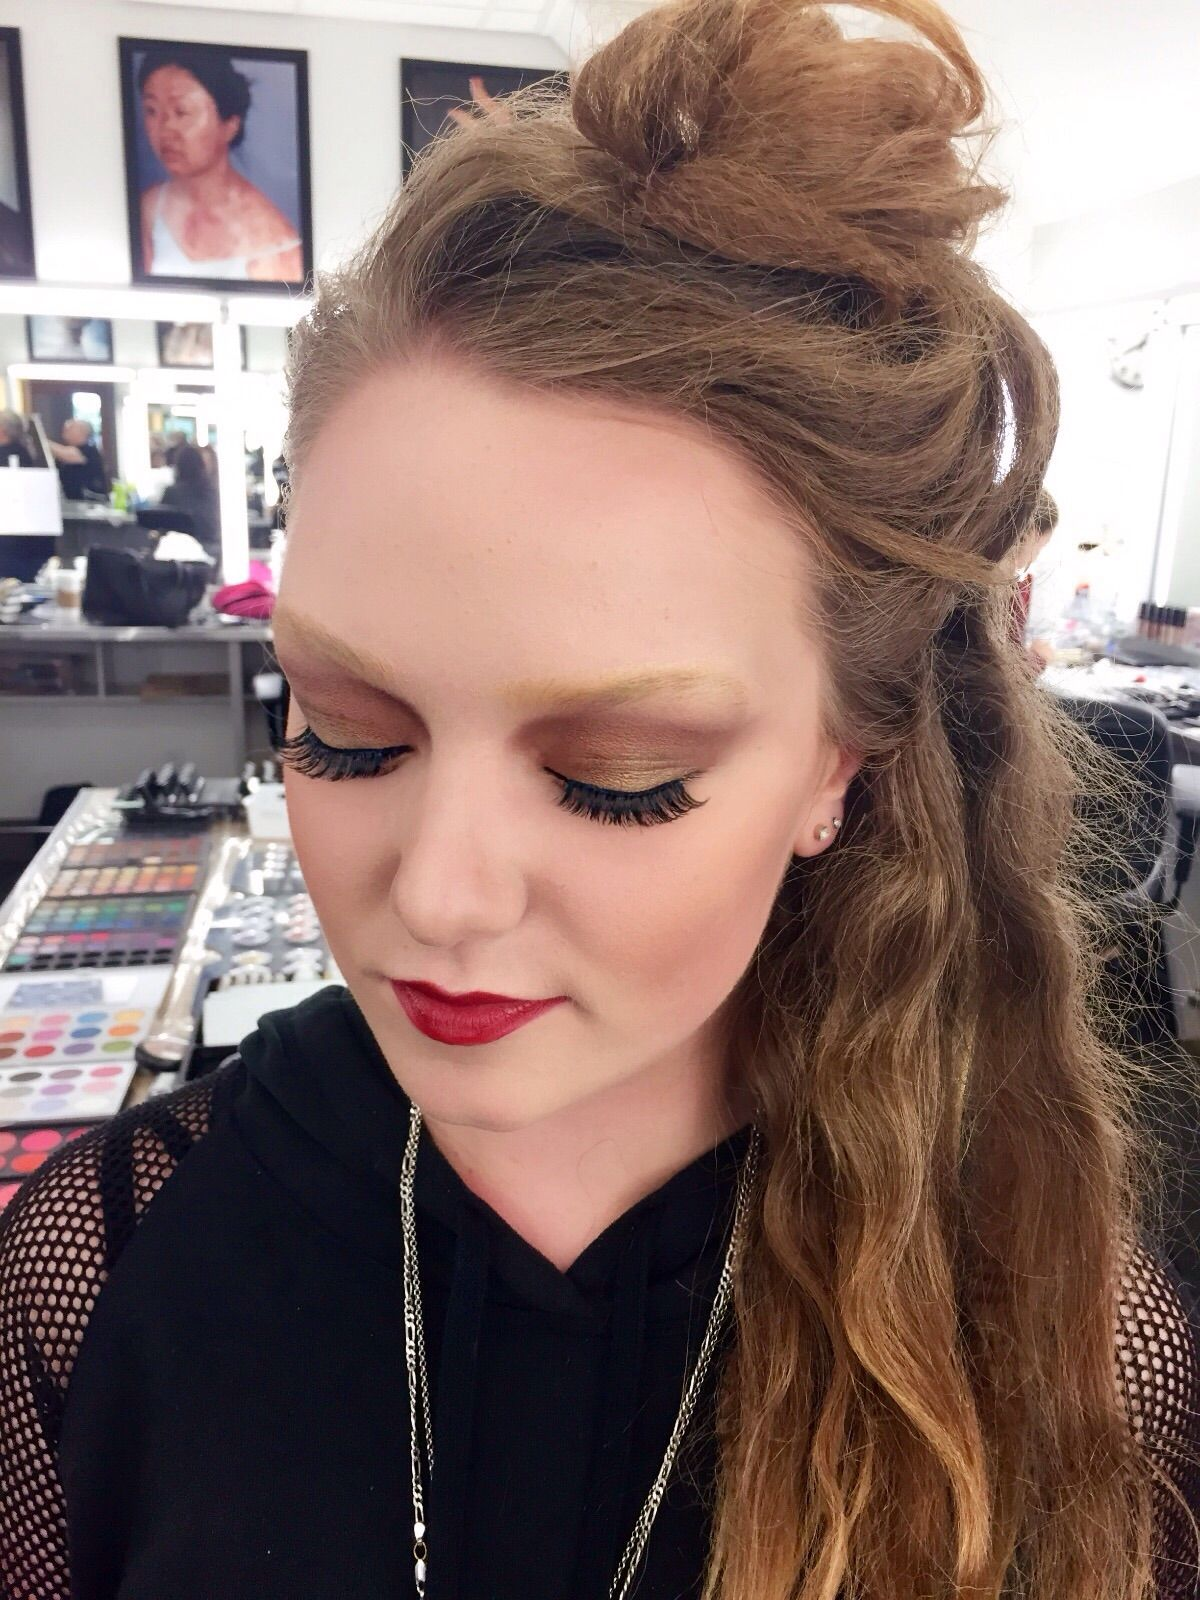 Holly Rose runway makeup. Faux bleached brows